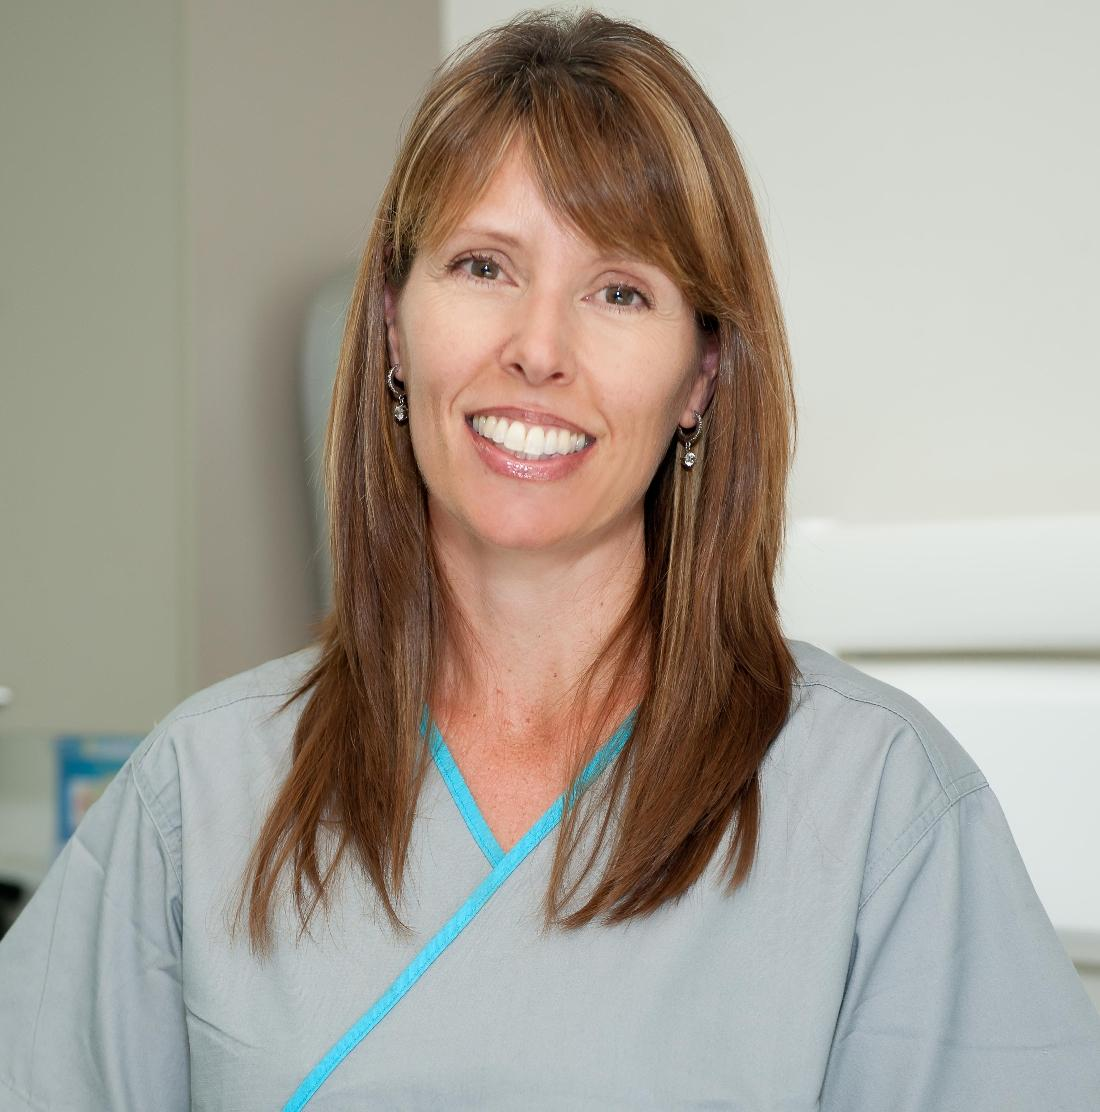 Dental Assistant at our Avondale Auckland dental office